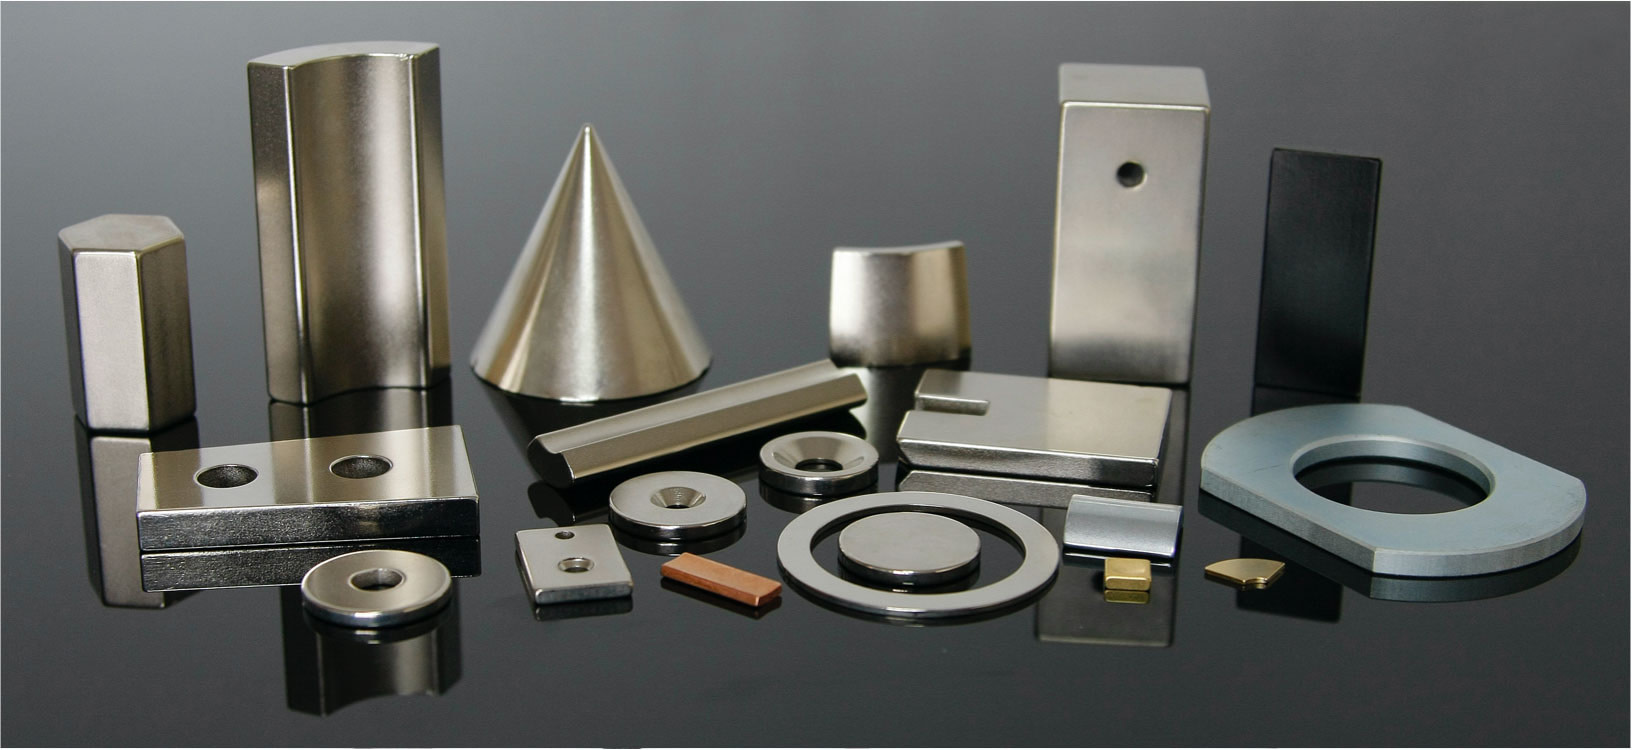 Typical forms and sizes of Neodymium magnets